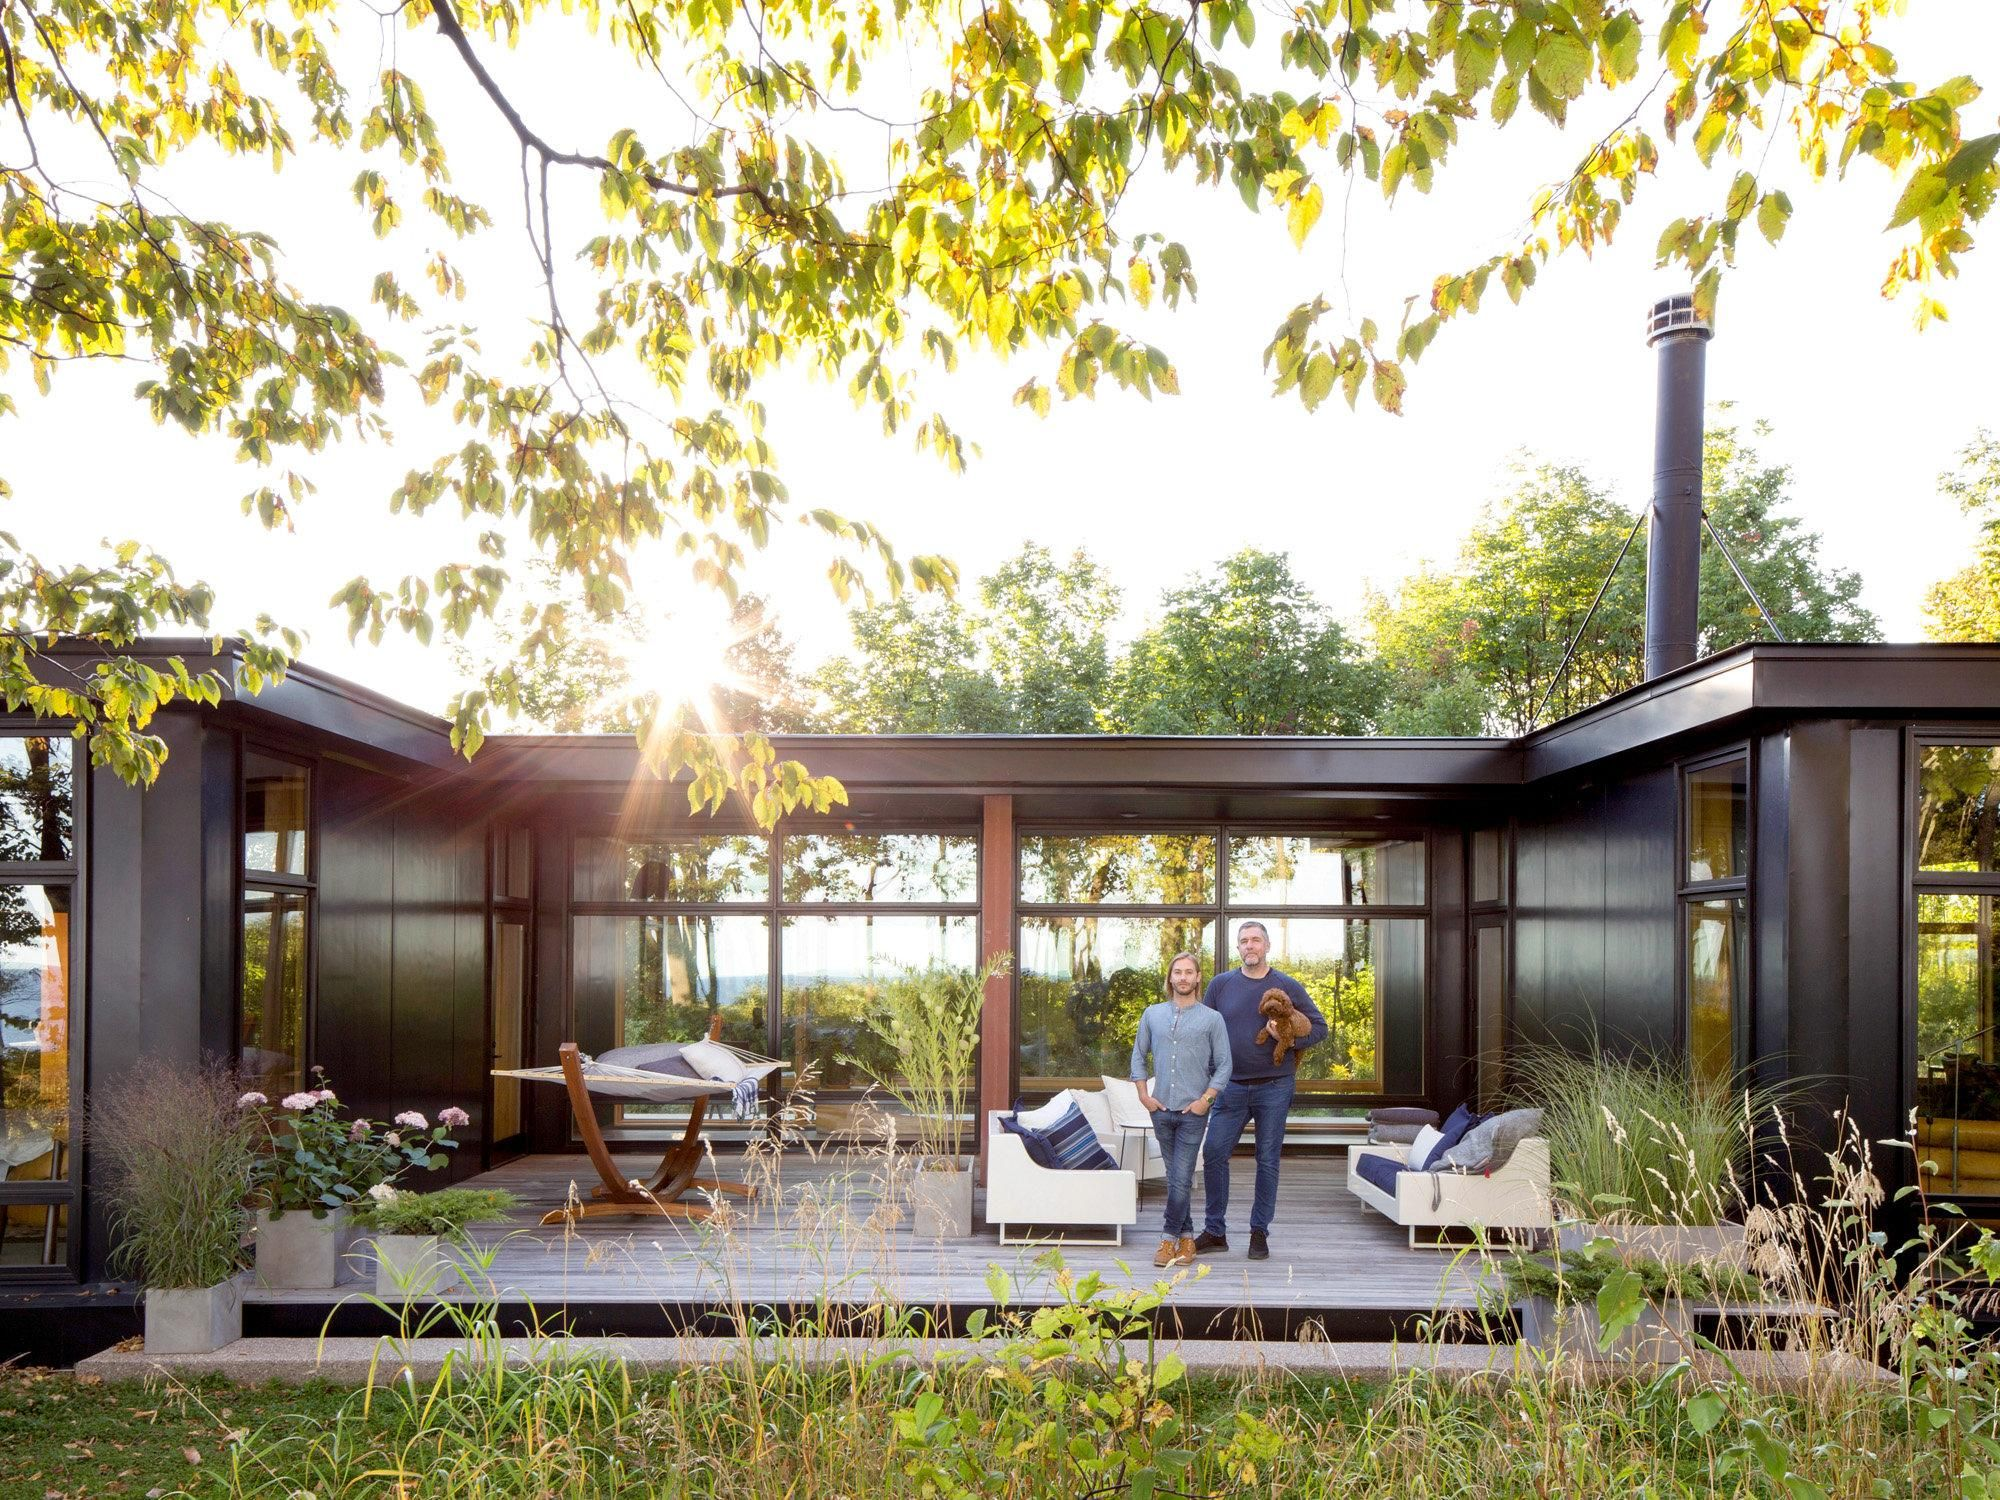 A Place To Unplug Container House Design Weekend House - Modulare Fertighäuser